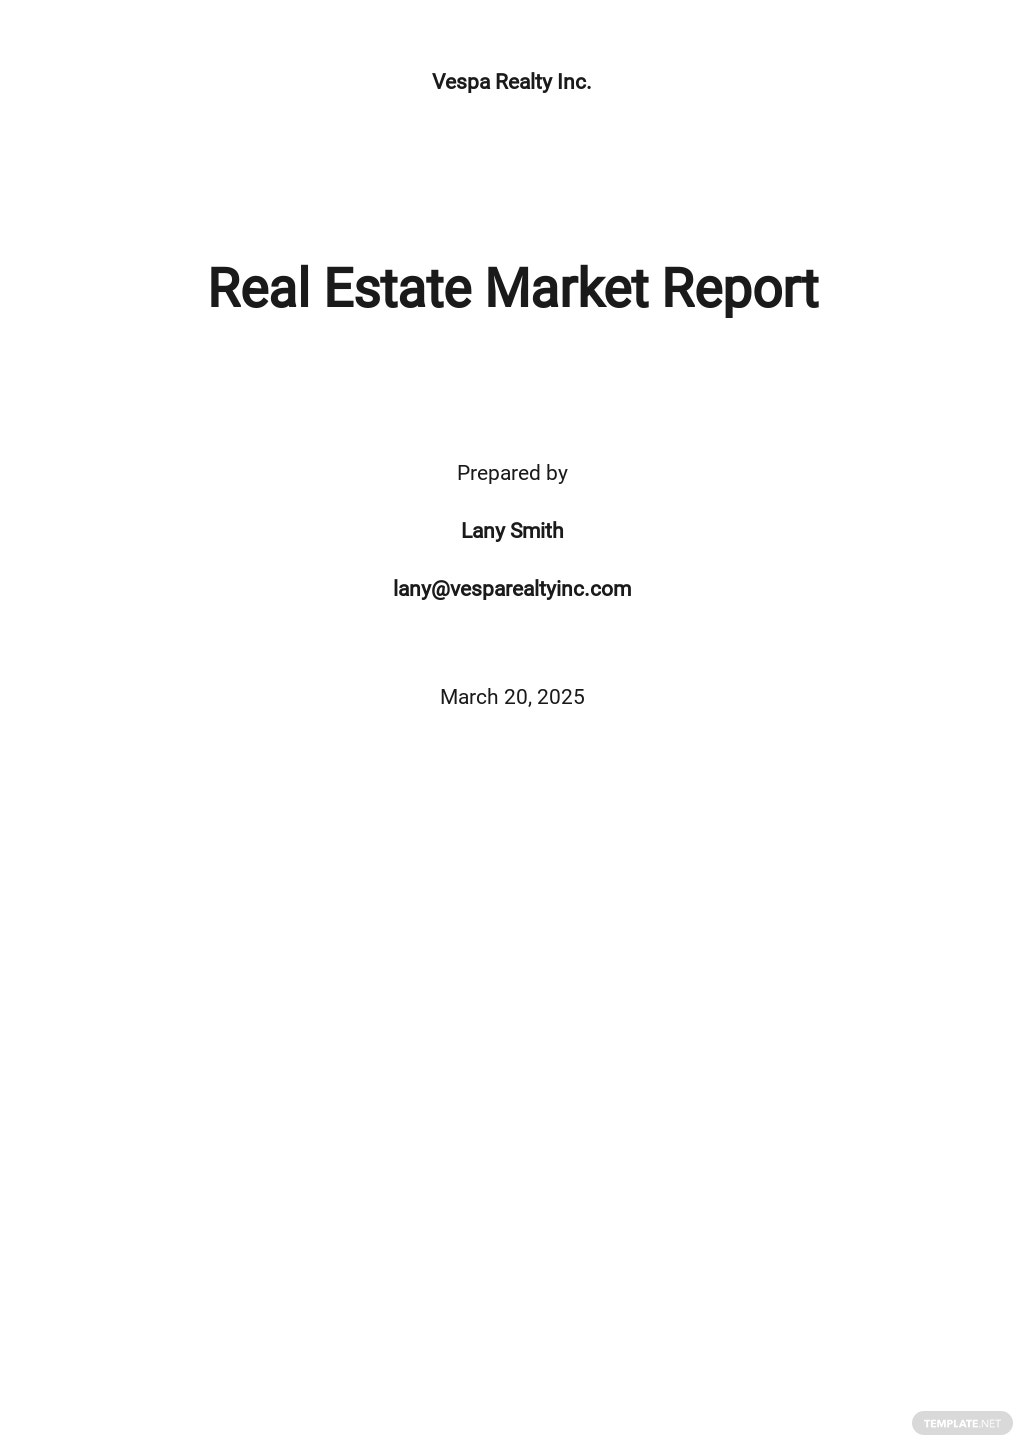 Real Estate Market Report Template